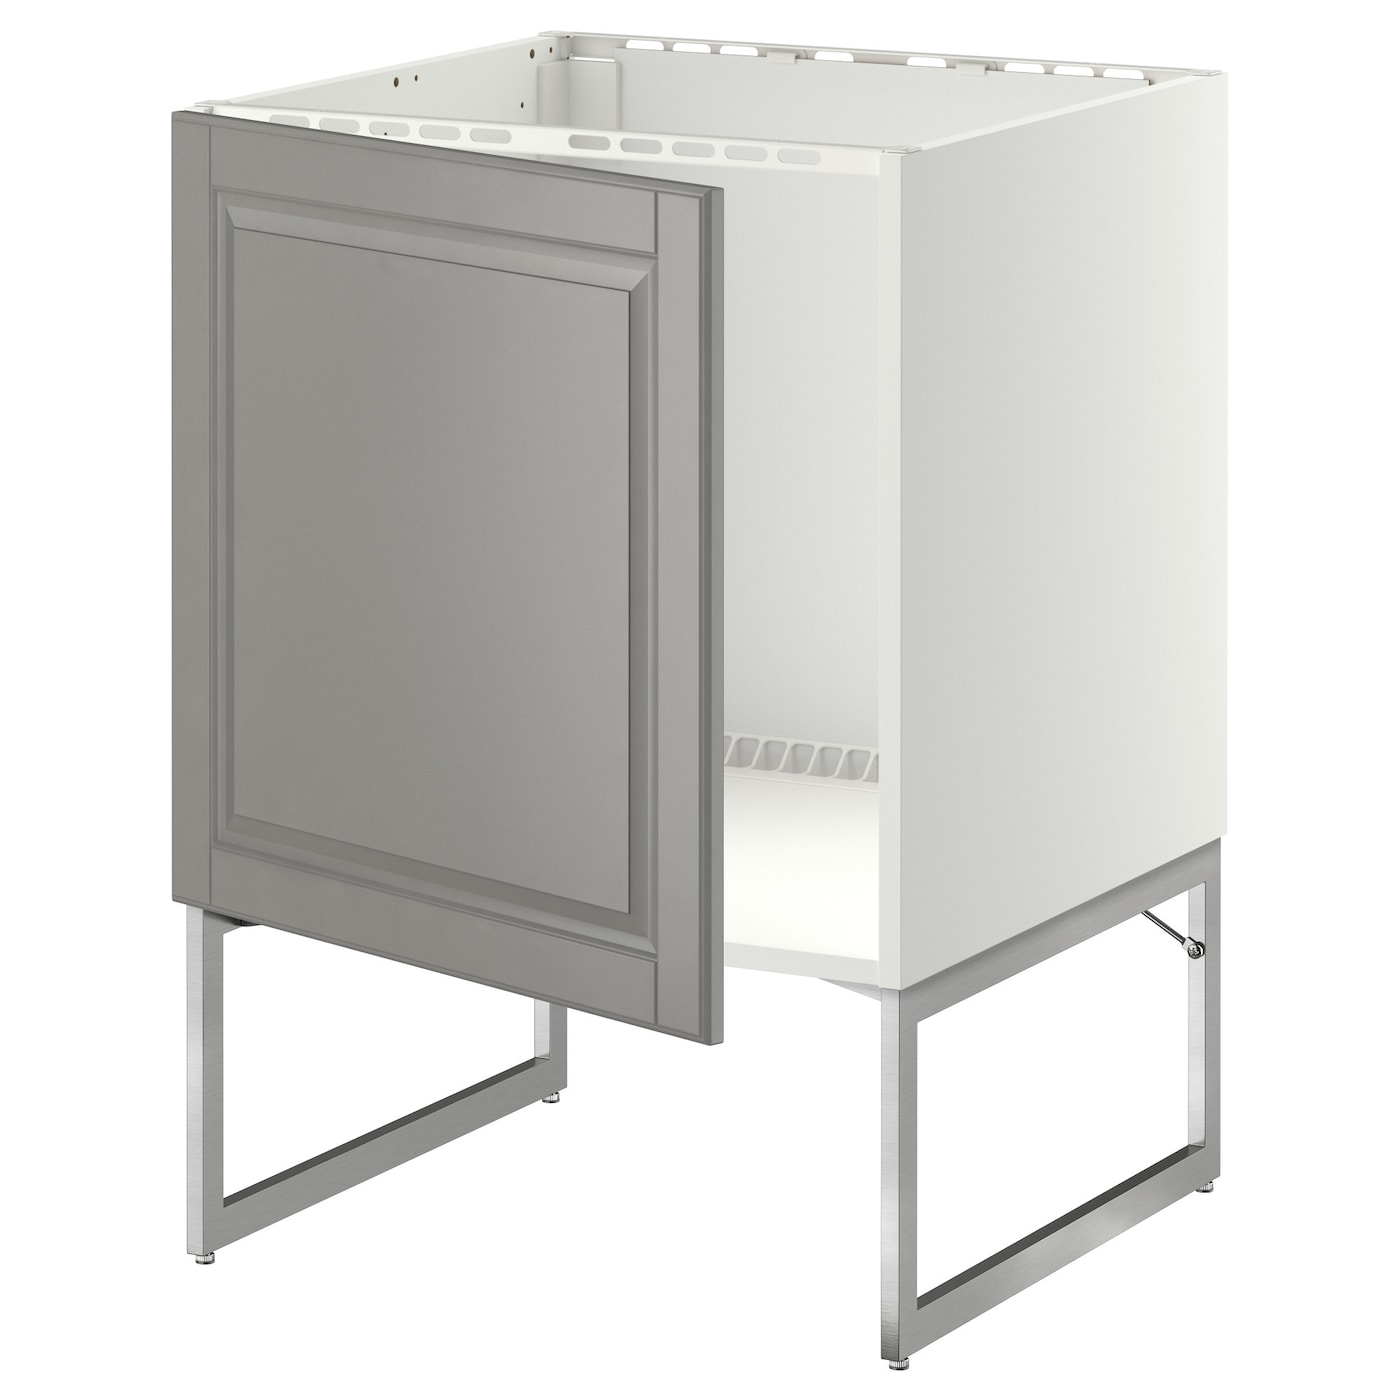 Metod base cabinet for sink white bodbyn grey 60x60x60 cm for Ikea kuche metod